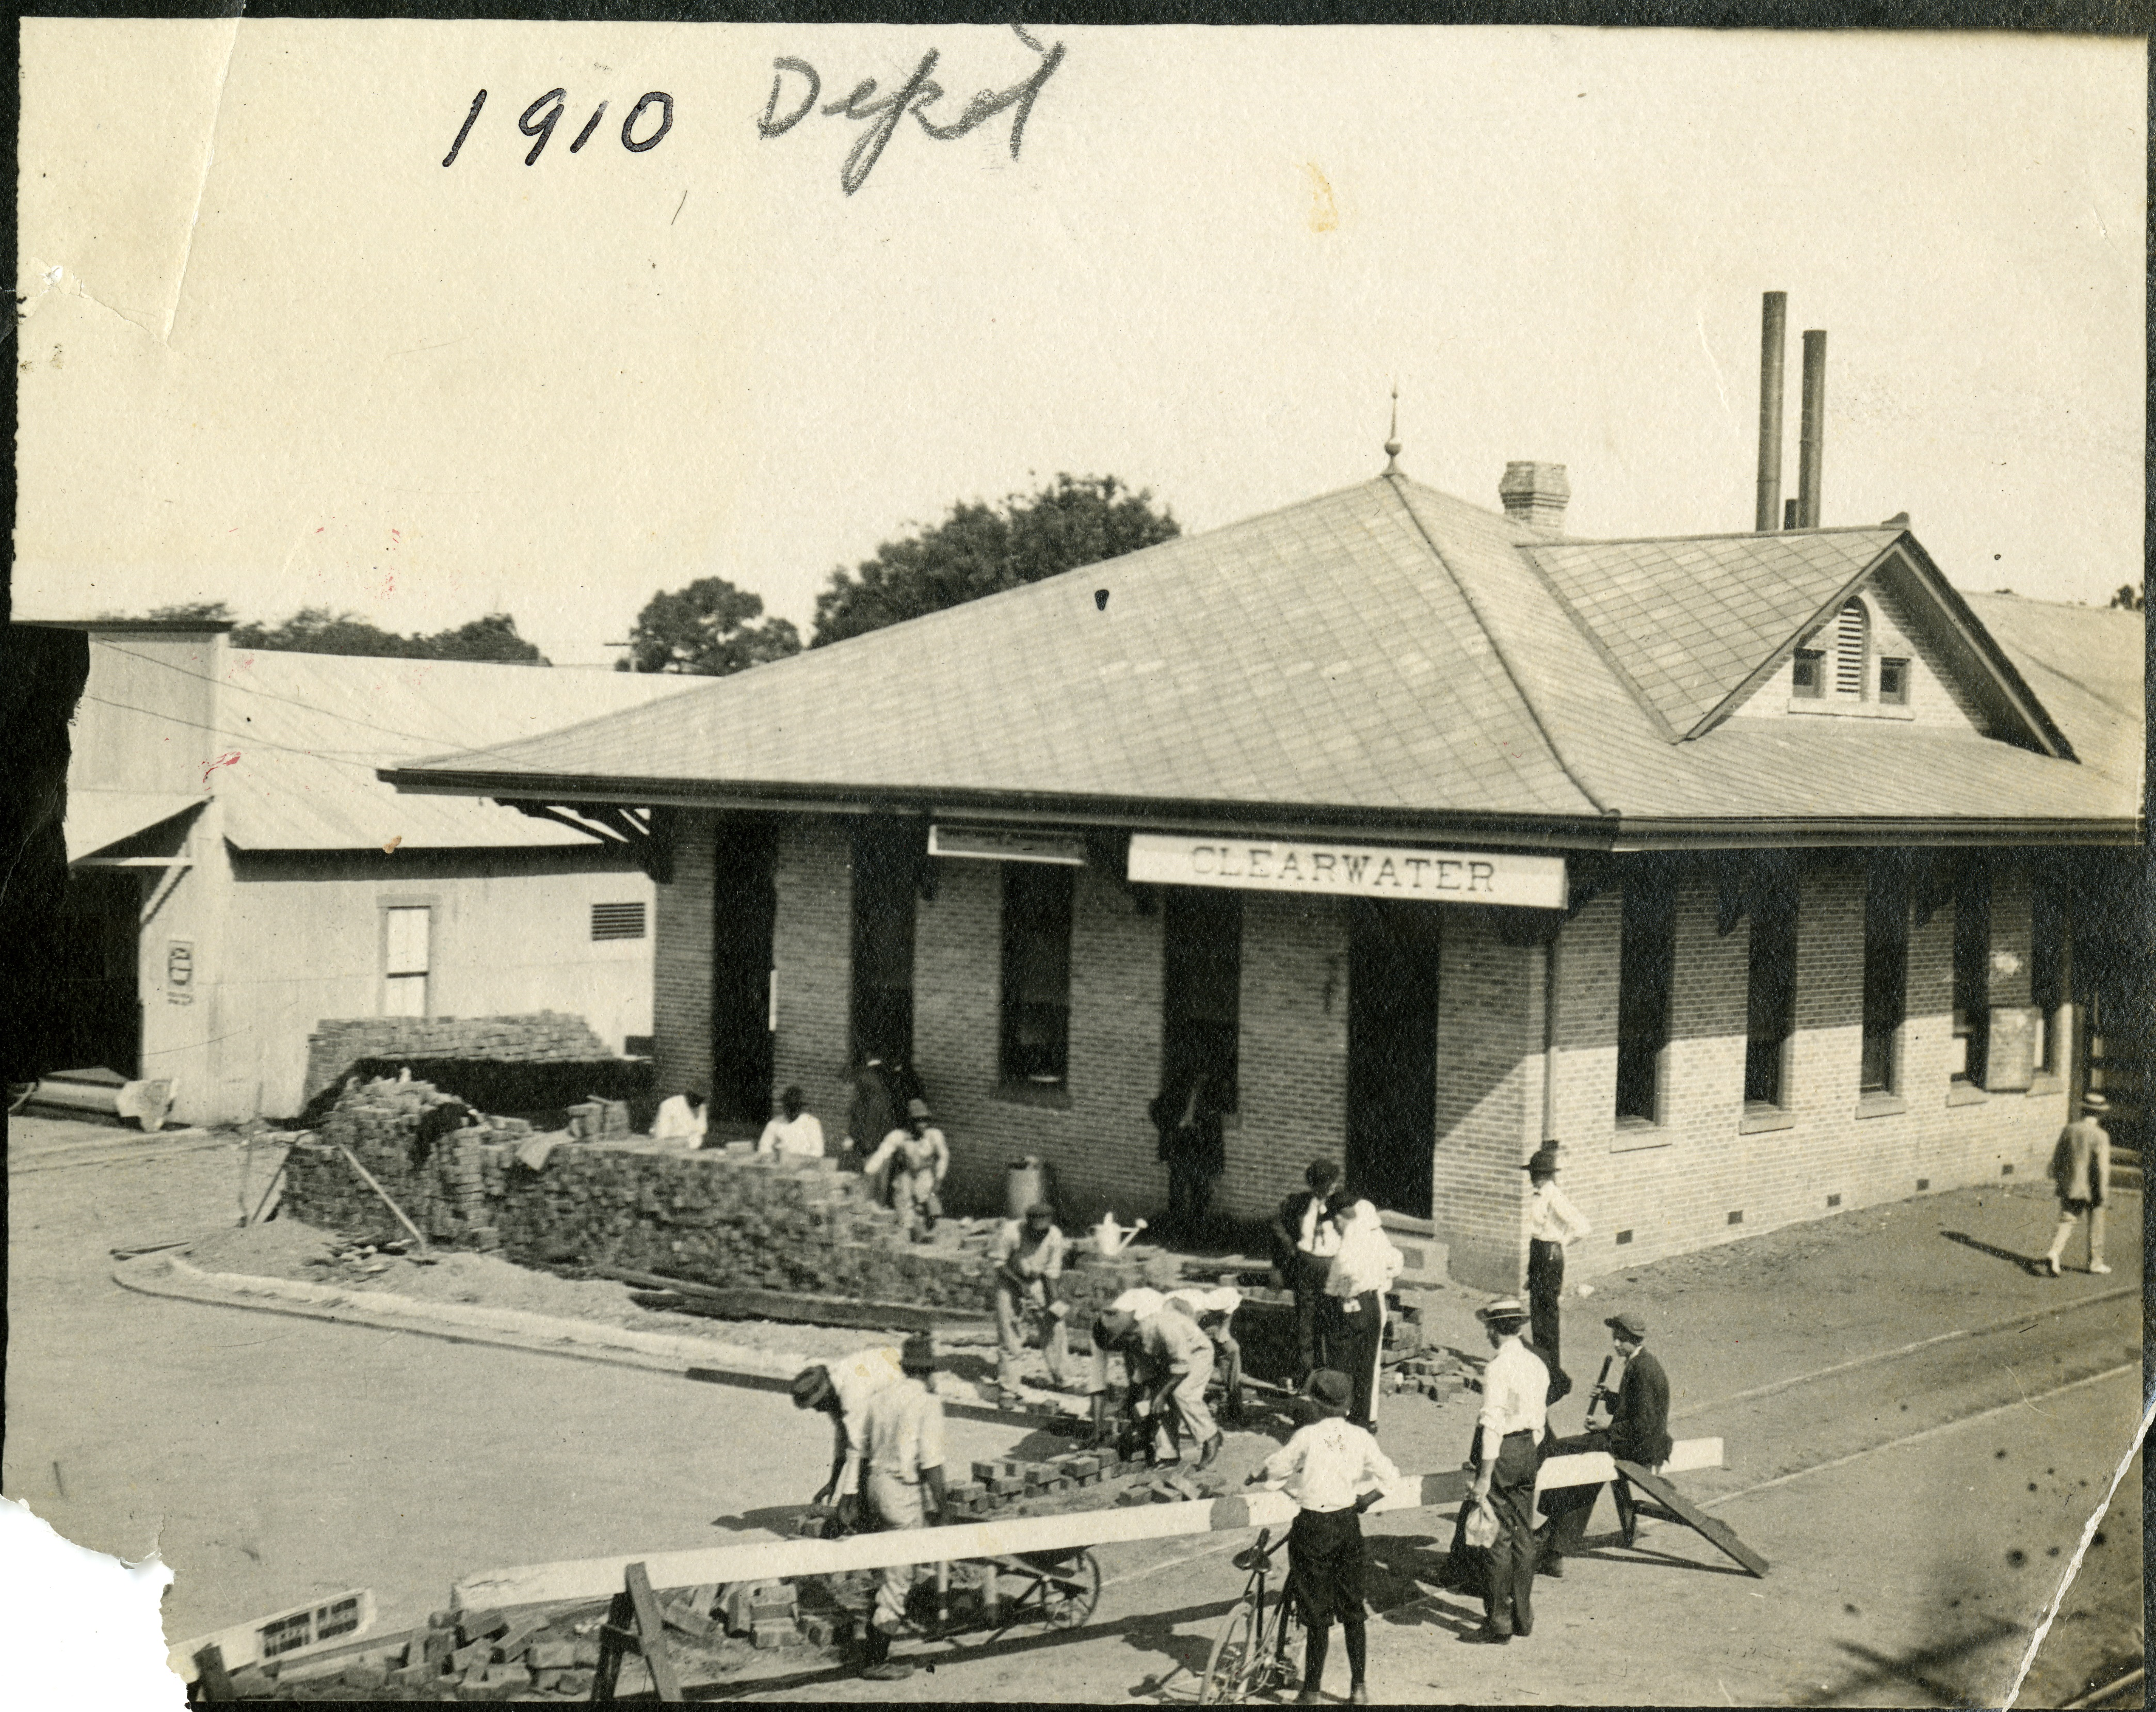 Paving around the Clearwater Depot, Clearwater, Florida, 1910.